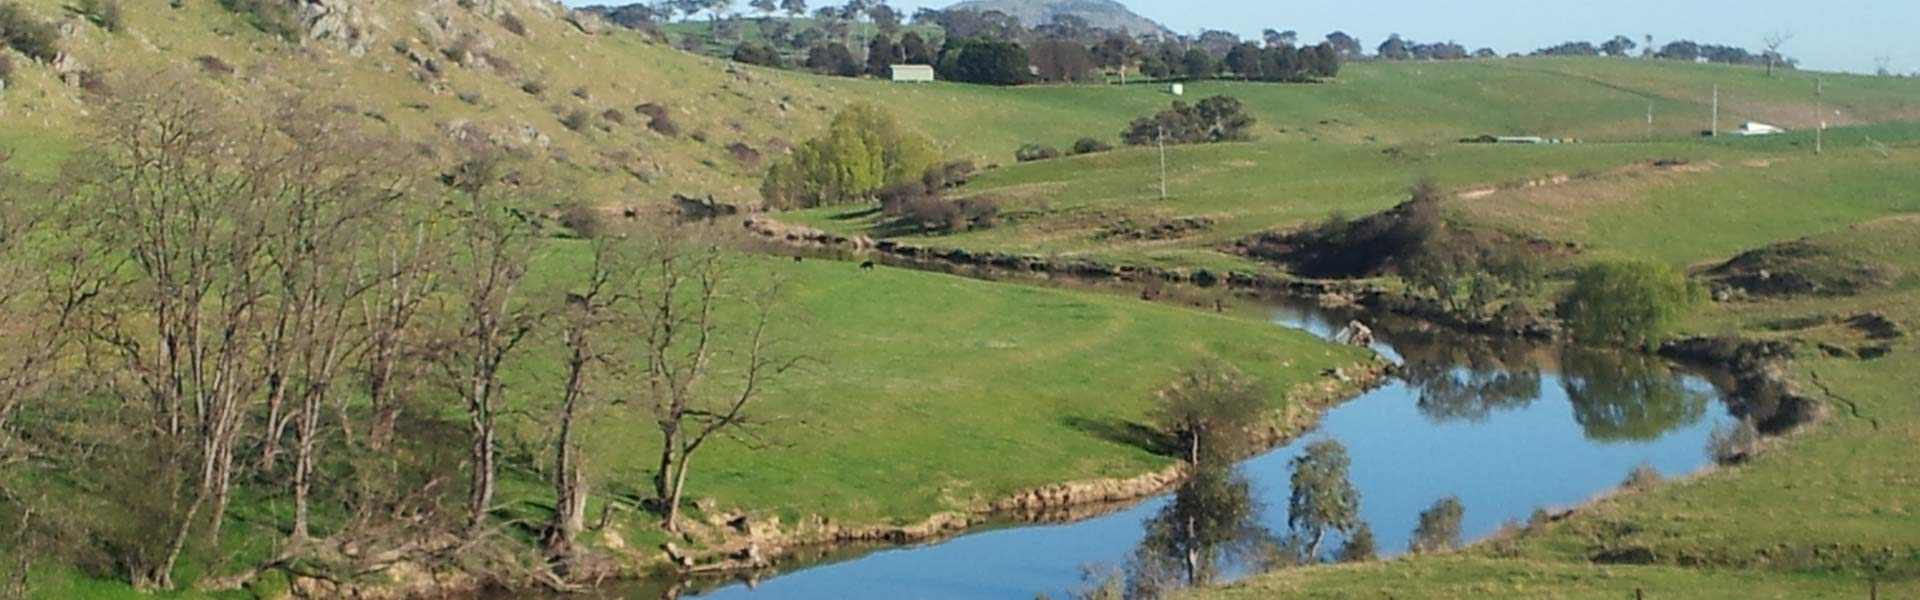 Accommodations In Your Budget near Yass